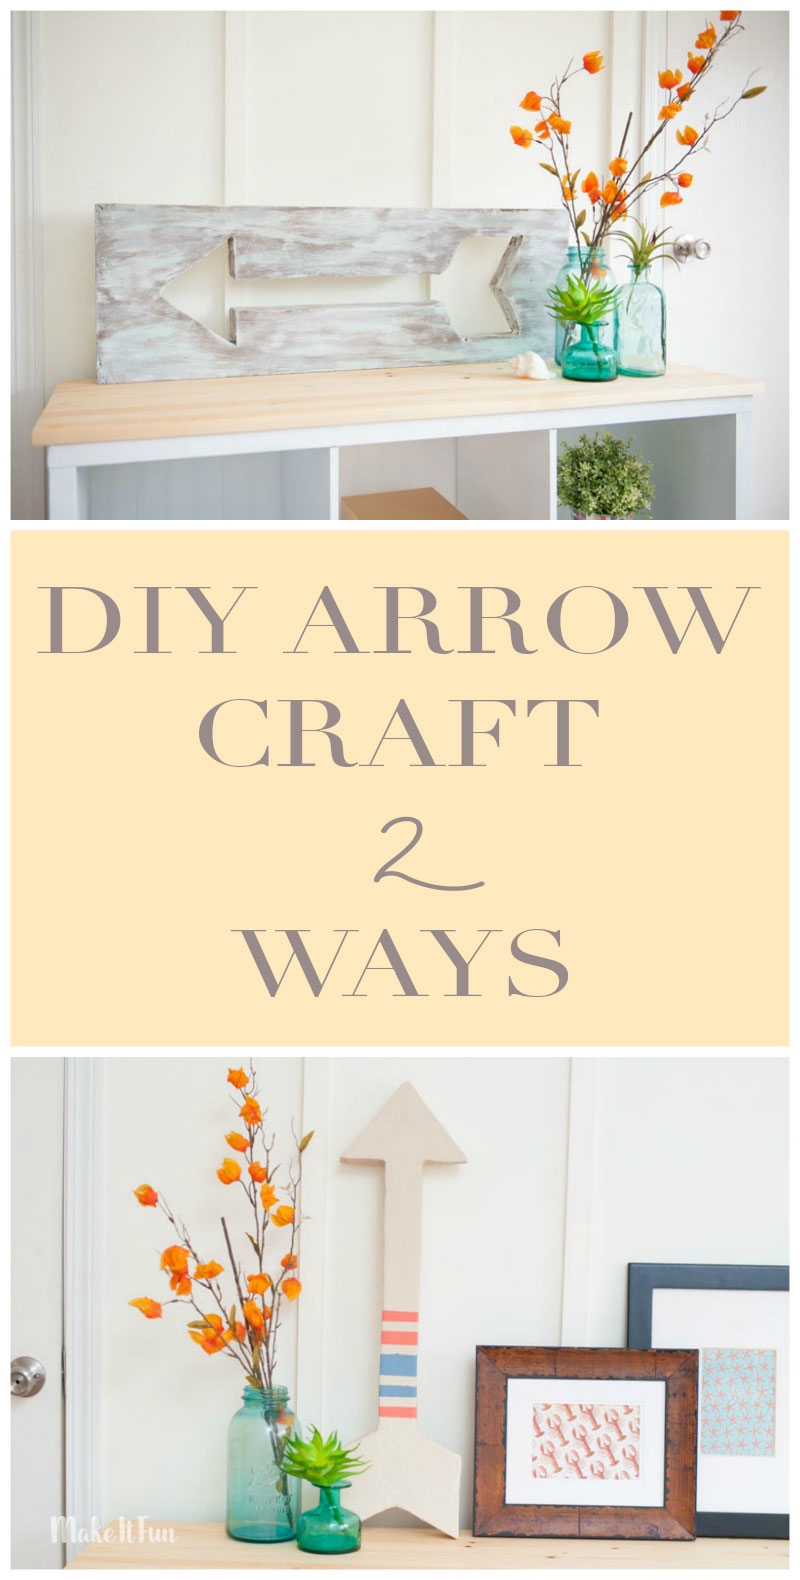 DIY Arrow Craft 2 Ways